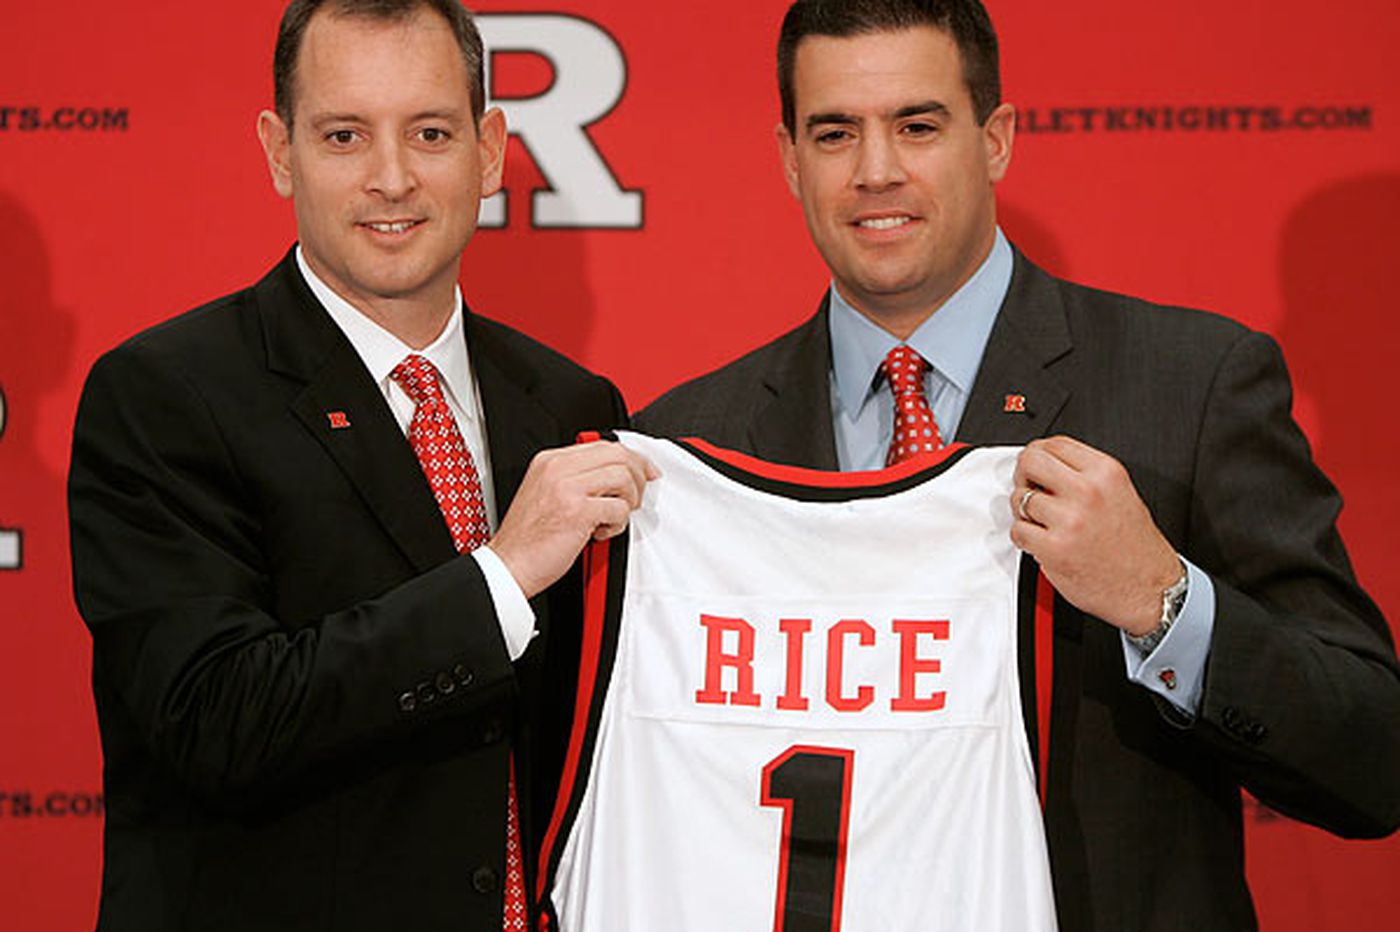 Tim Pernetti resigns as Rutgers athletic director in wake of Mike Rice abuse video scandal